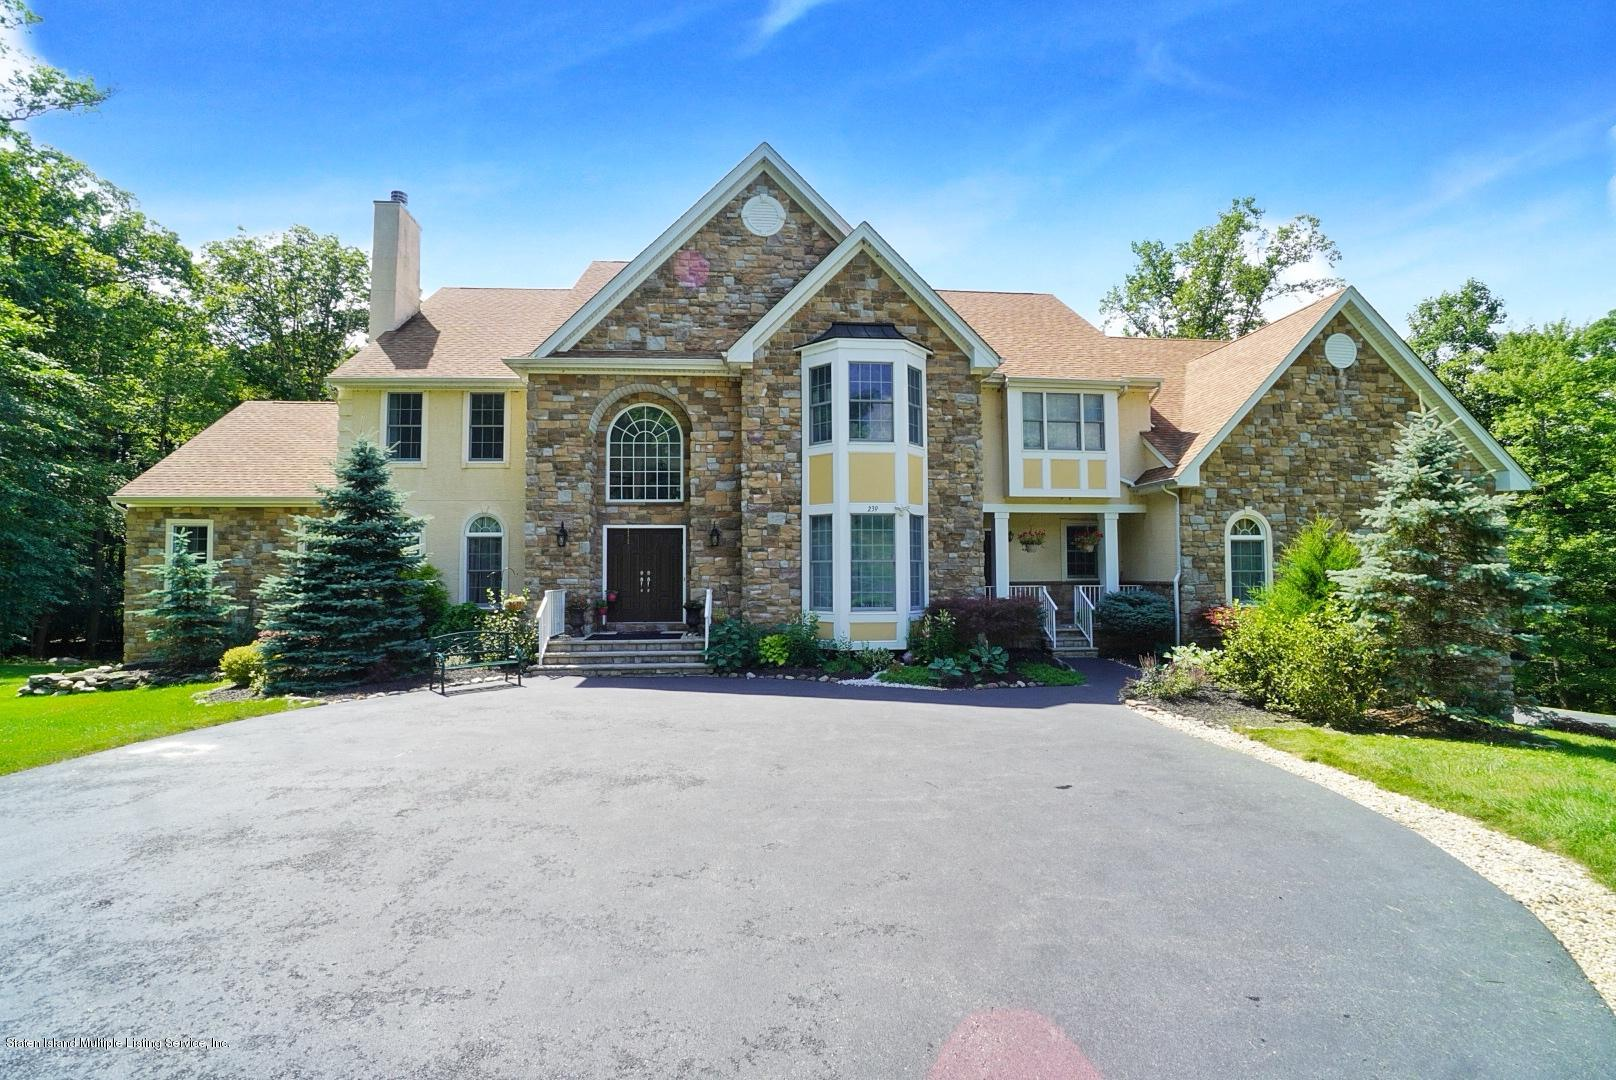 Single Family - Detached in Off Island - 239 Glen Road  Out Of Area, NY 07405